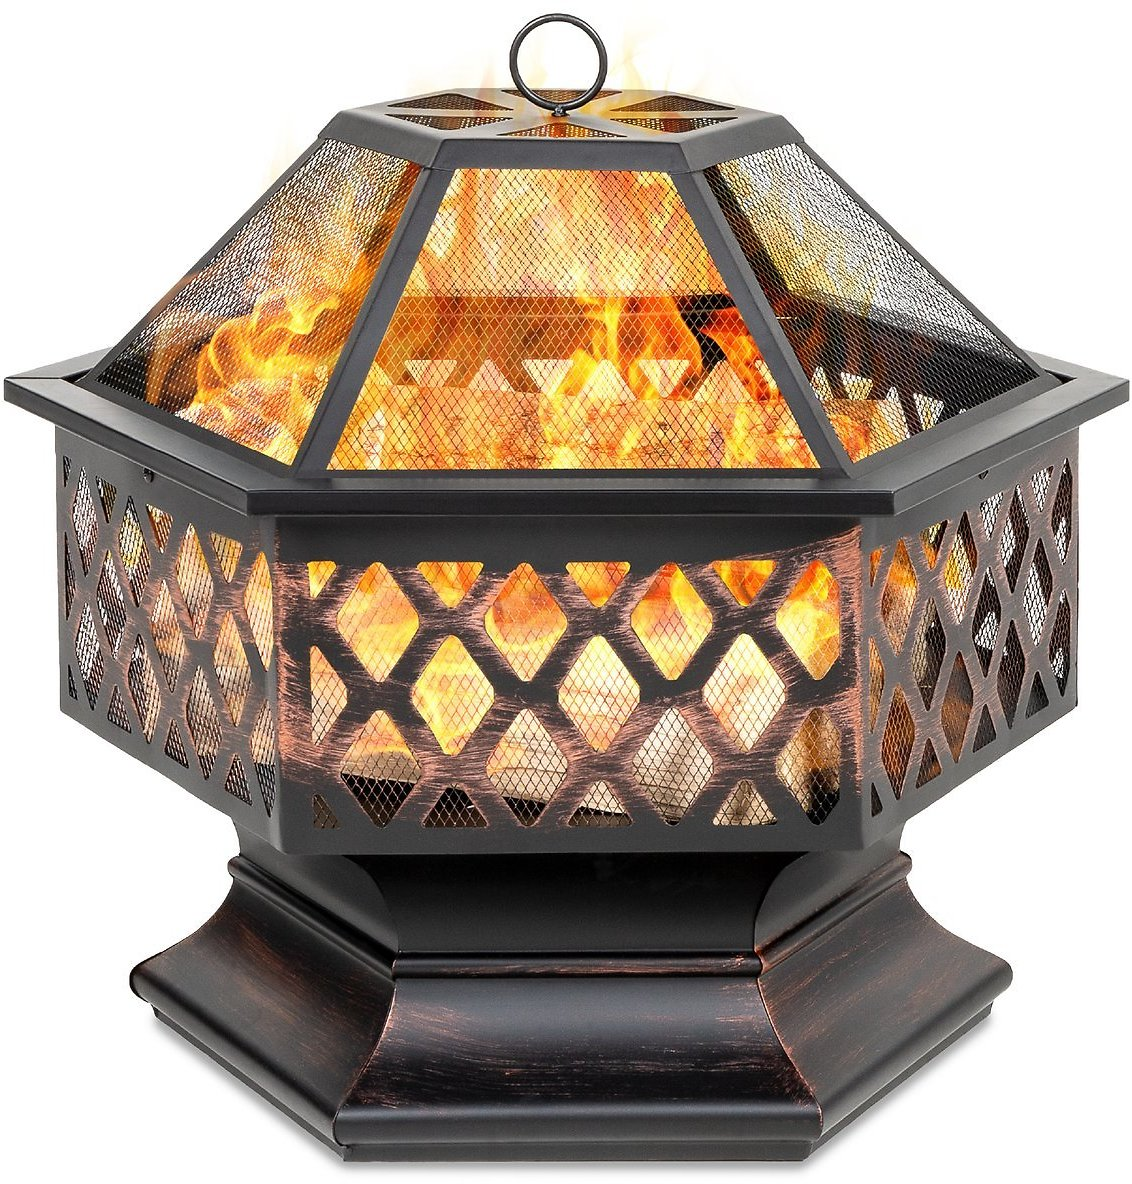 Hex-Shaped Outdoor Fire Pit w/ Flame-Retardant Lid (24in)